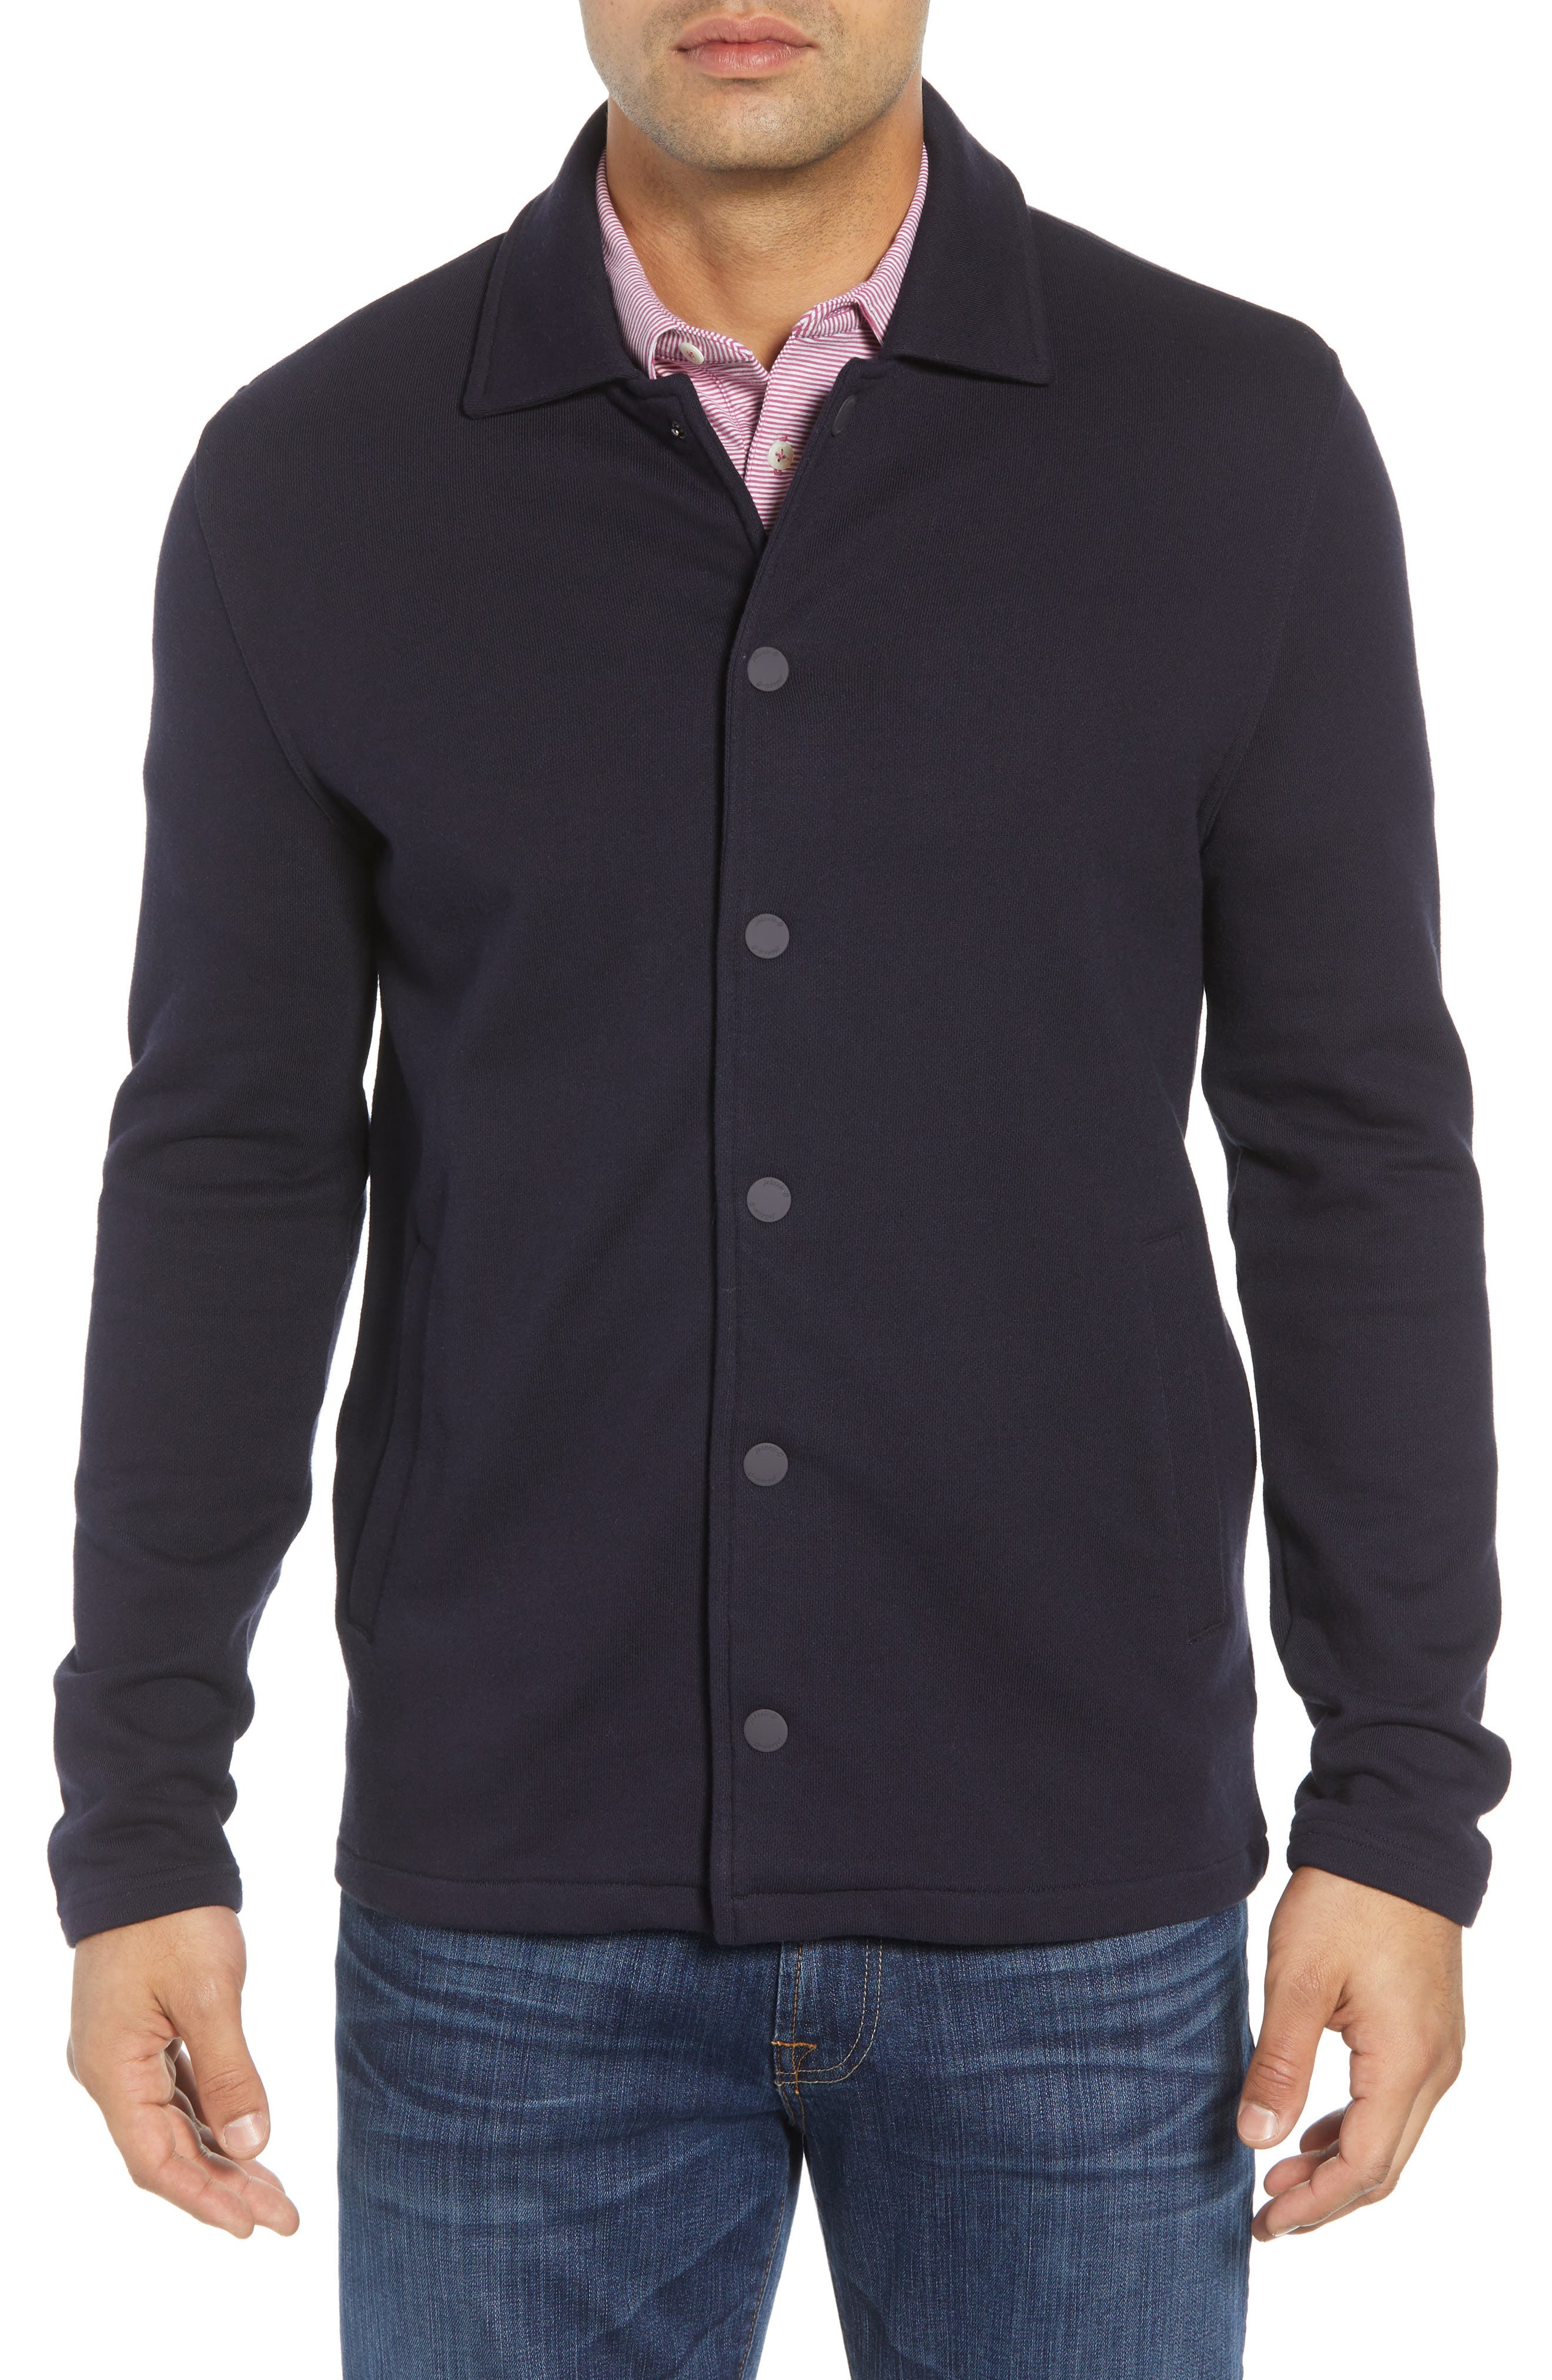 Norfolk Classic Fit Terry Jacket,                             Alternate thumbnail 4, color,                             464